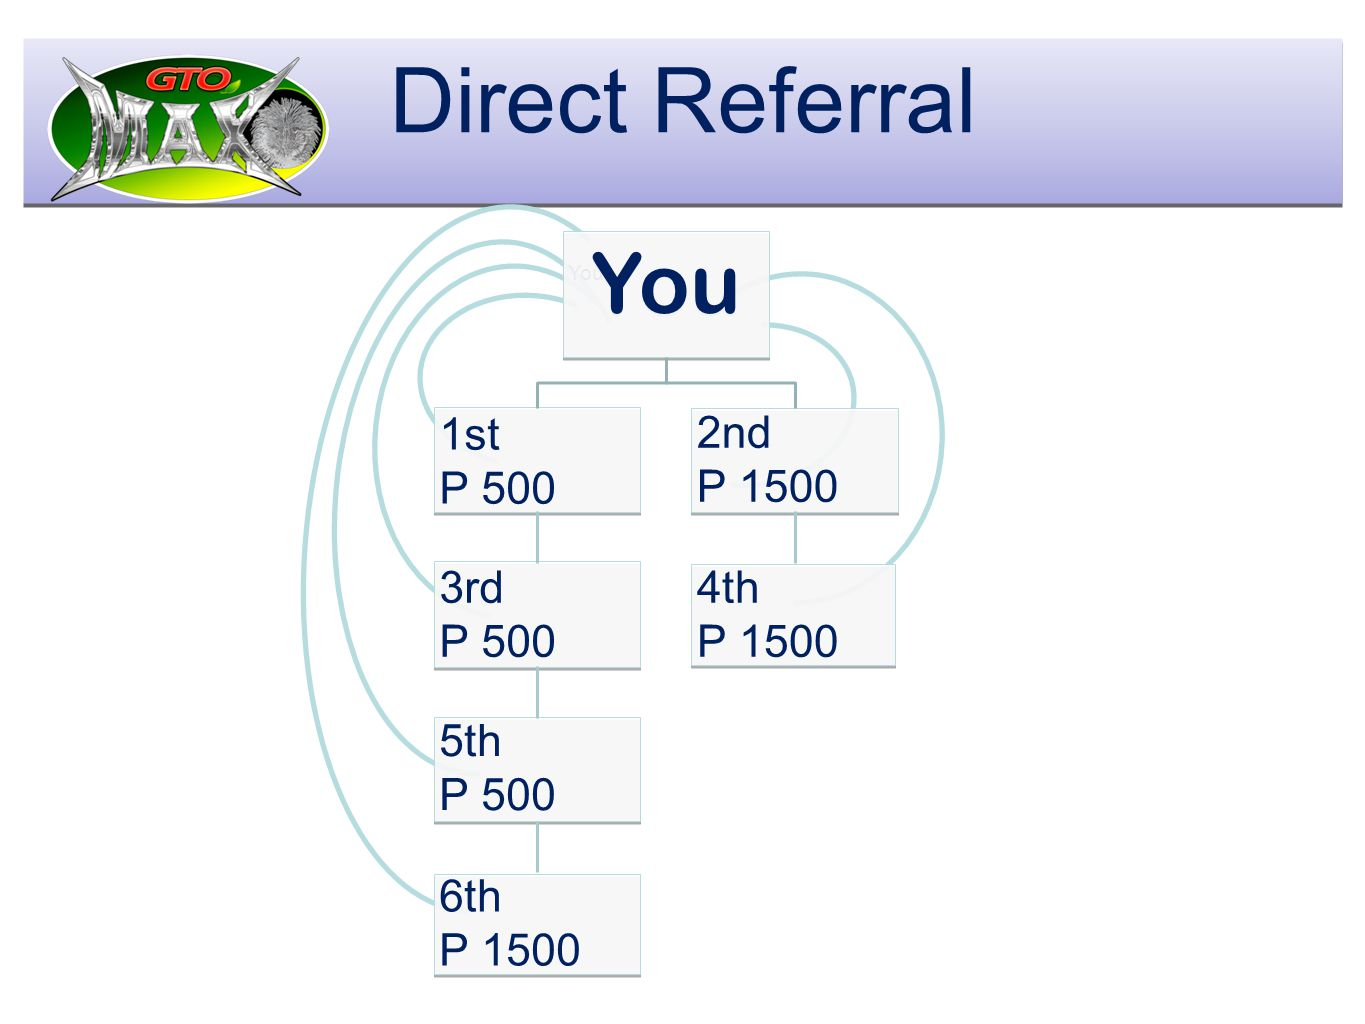 t Direct Referral 1st P 500 3rd P 500 You 5th P 500 6th P 1500 2nd P 1500 4th P 1500